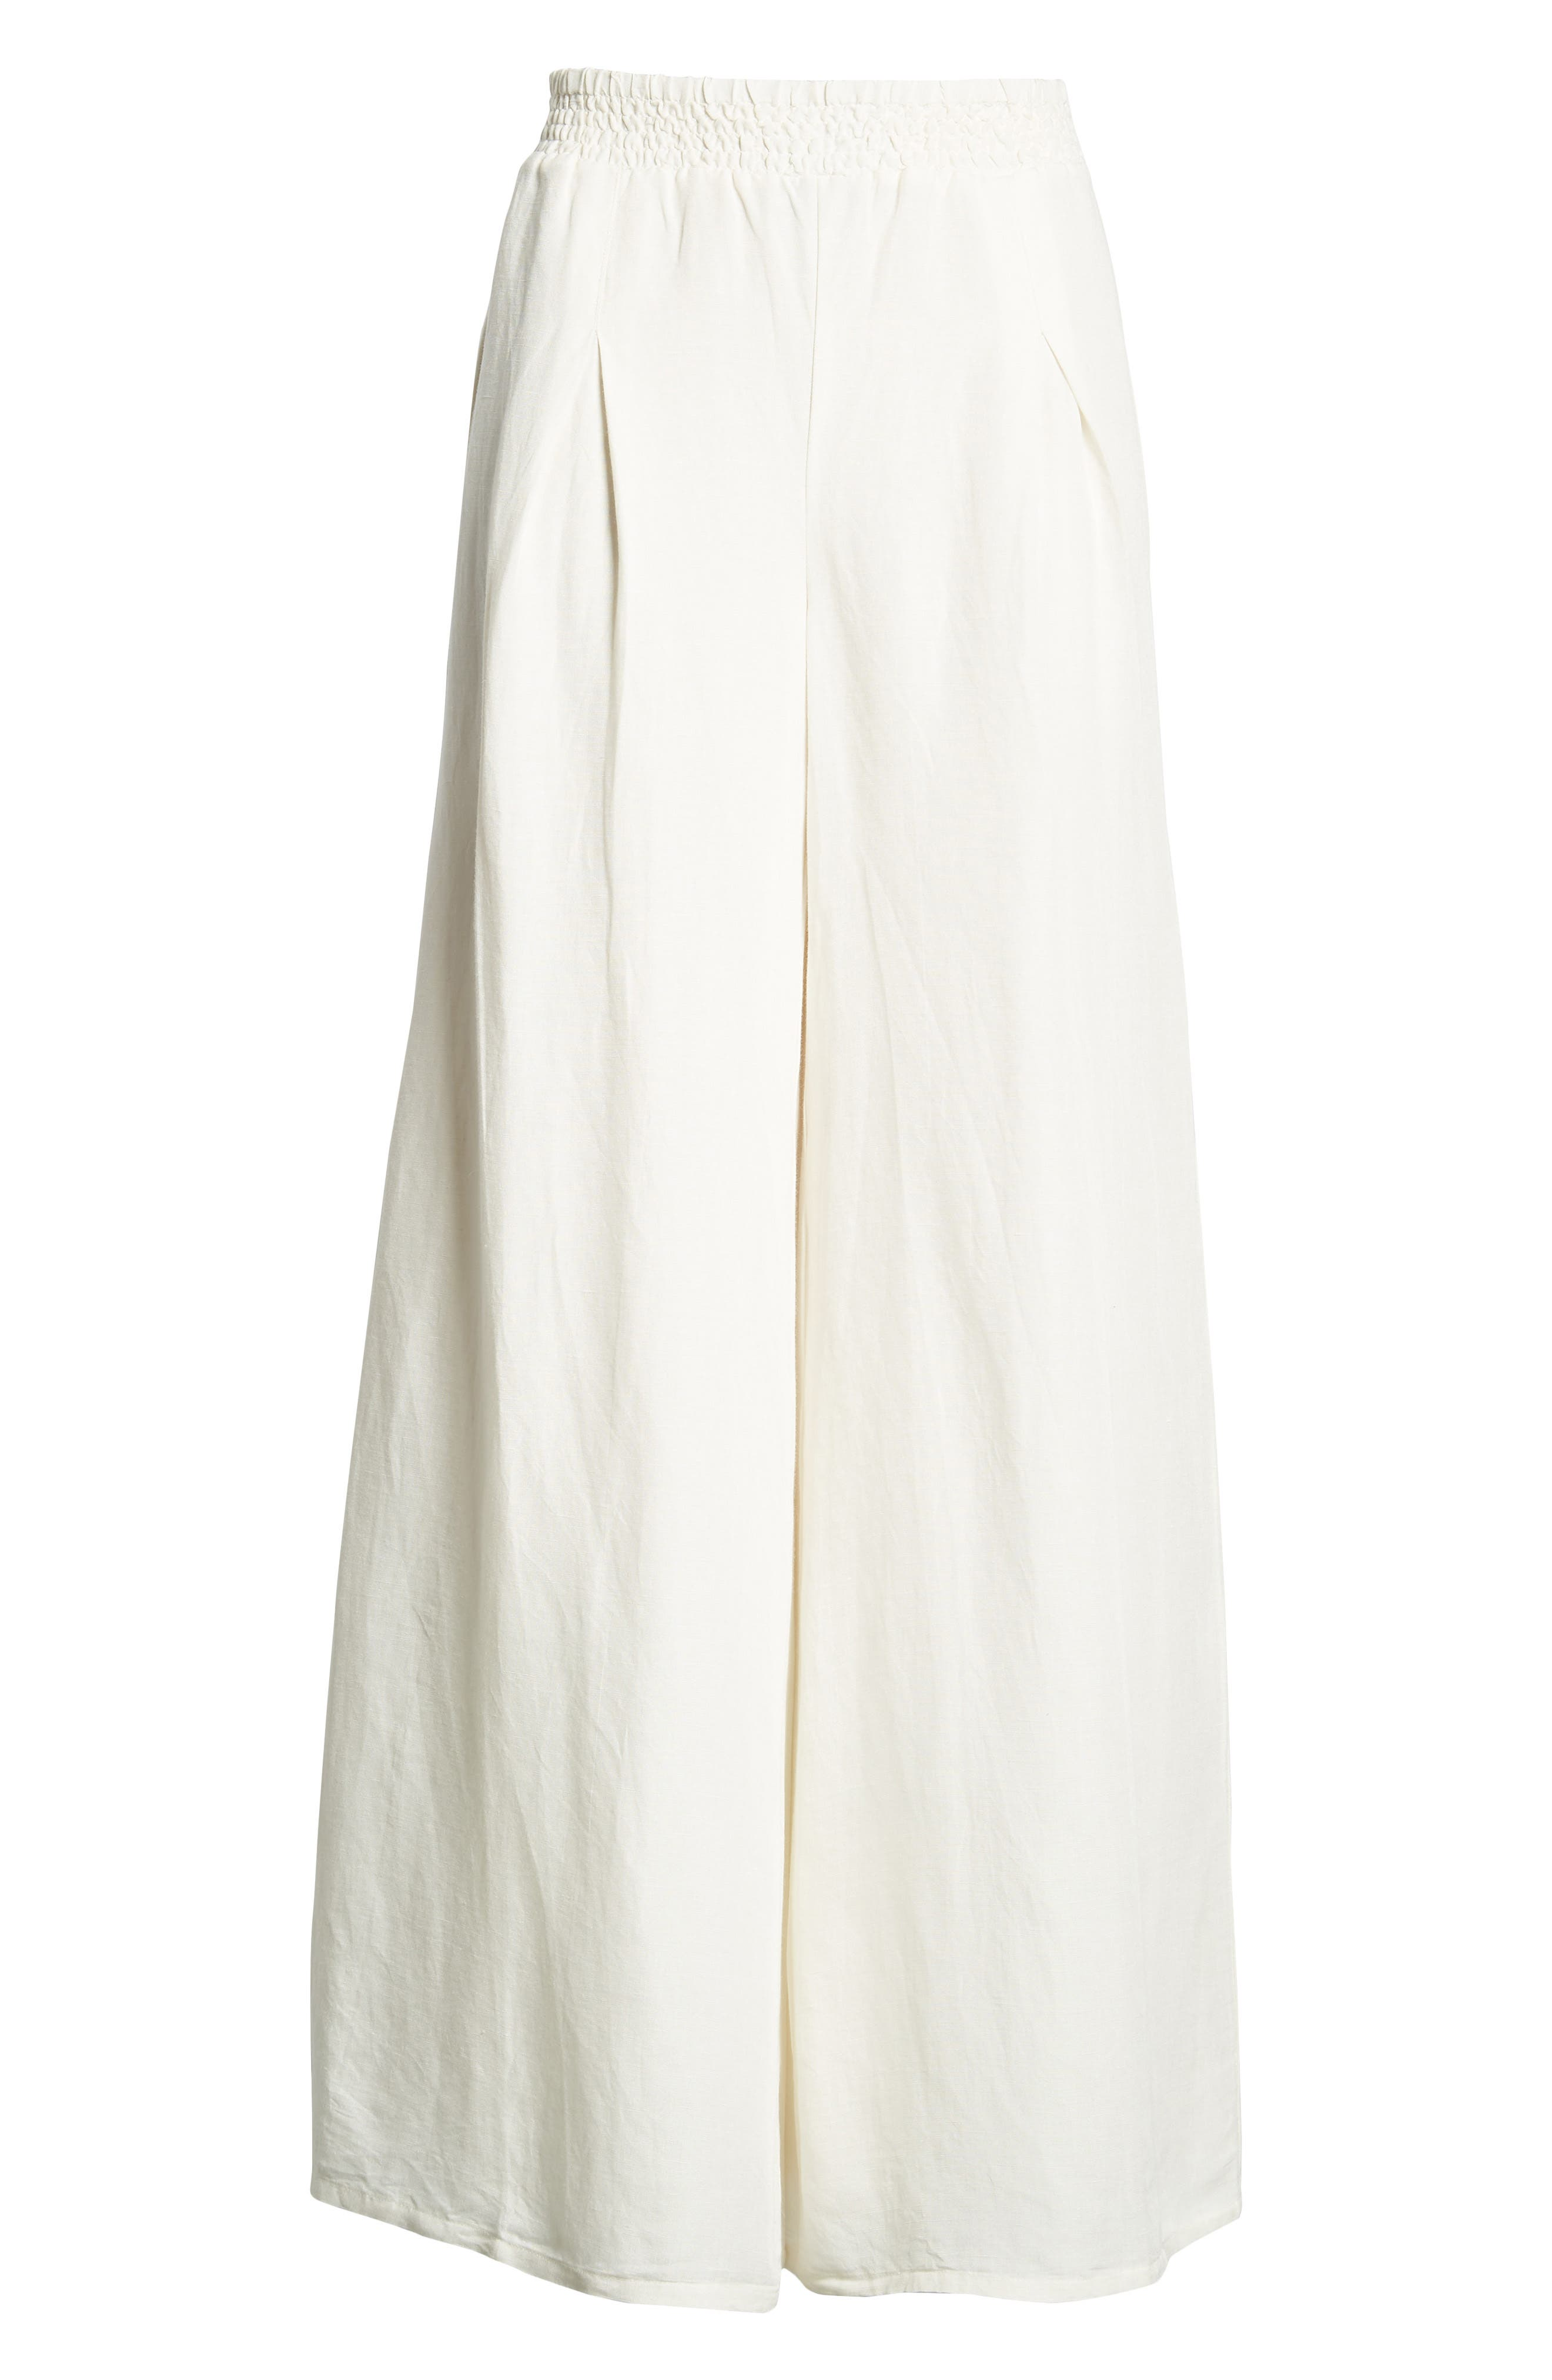 High Roads Smocked Wide Leg Pants,                             Alternate thumbnail 7, color,                             190